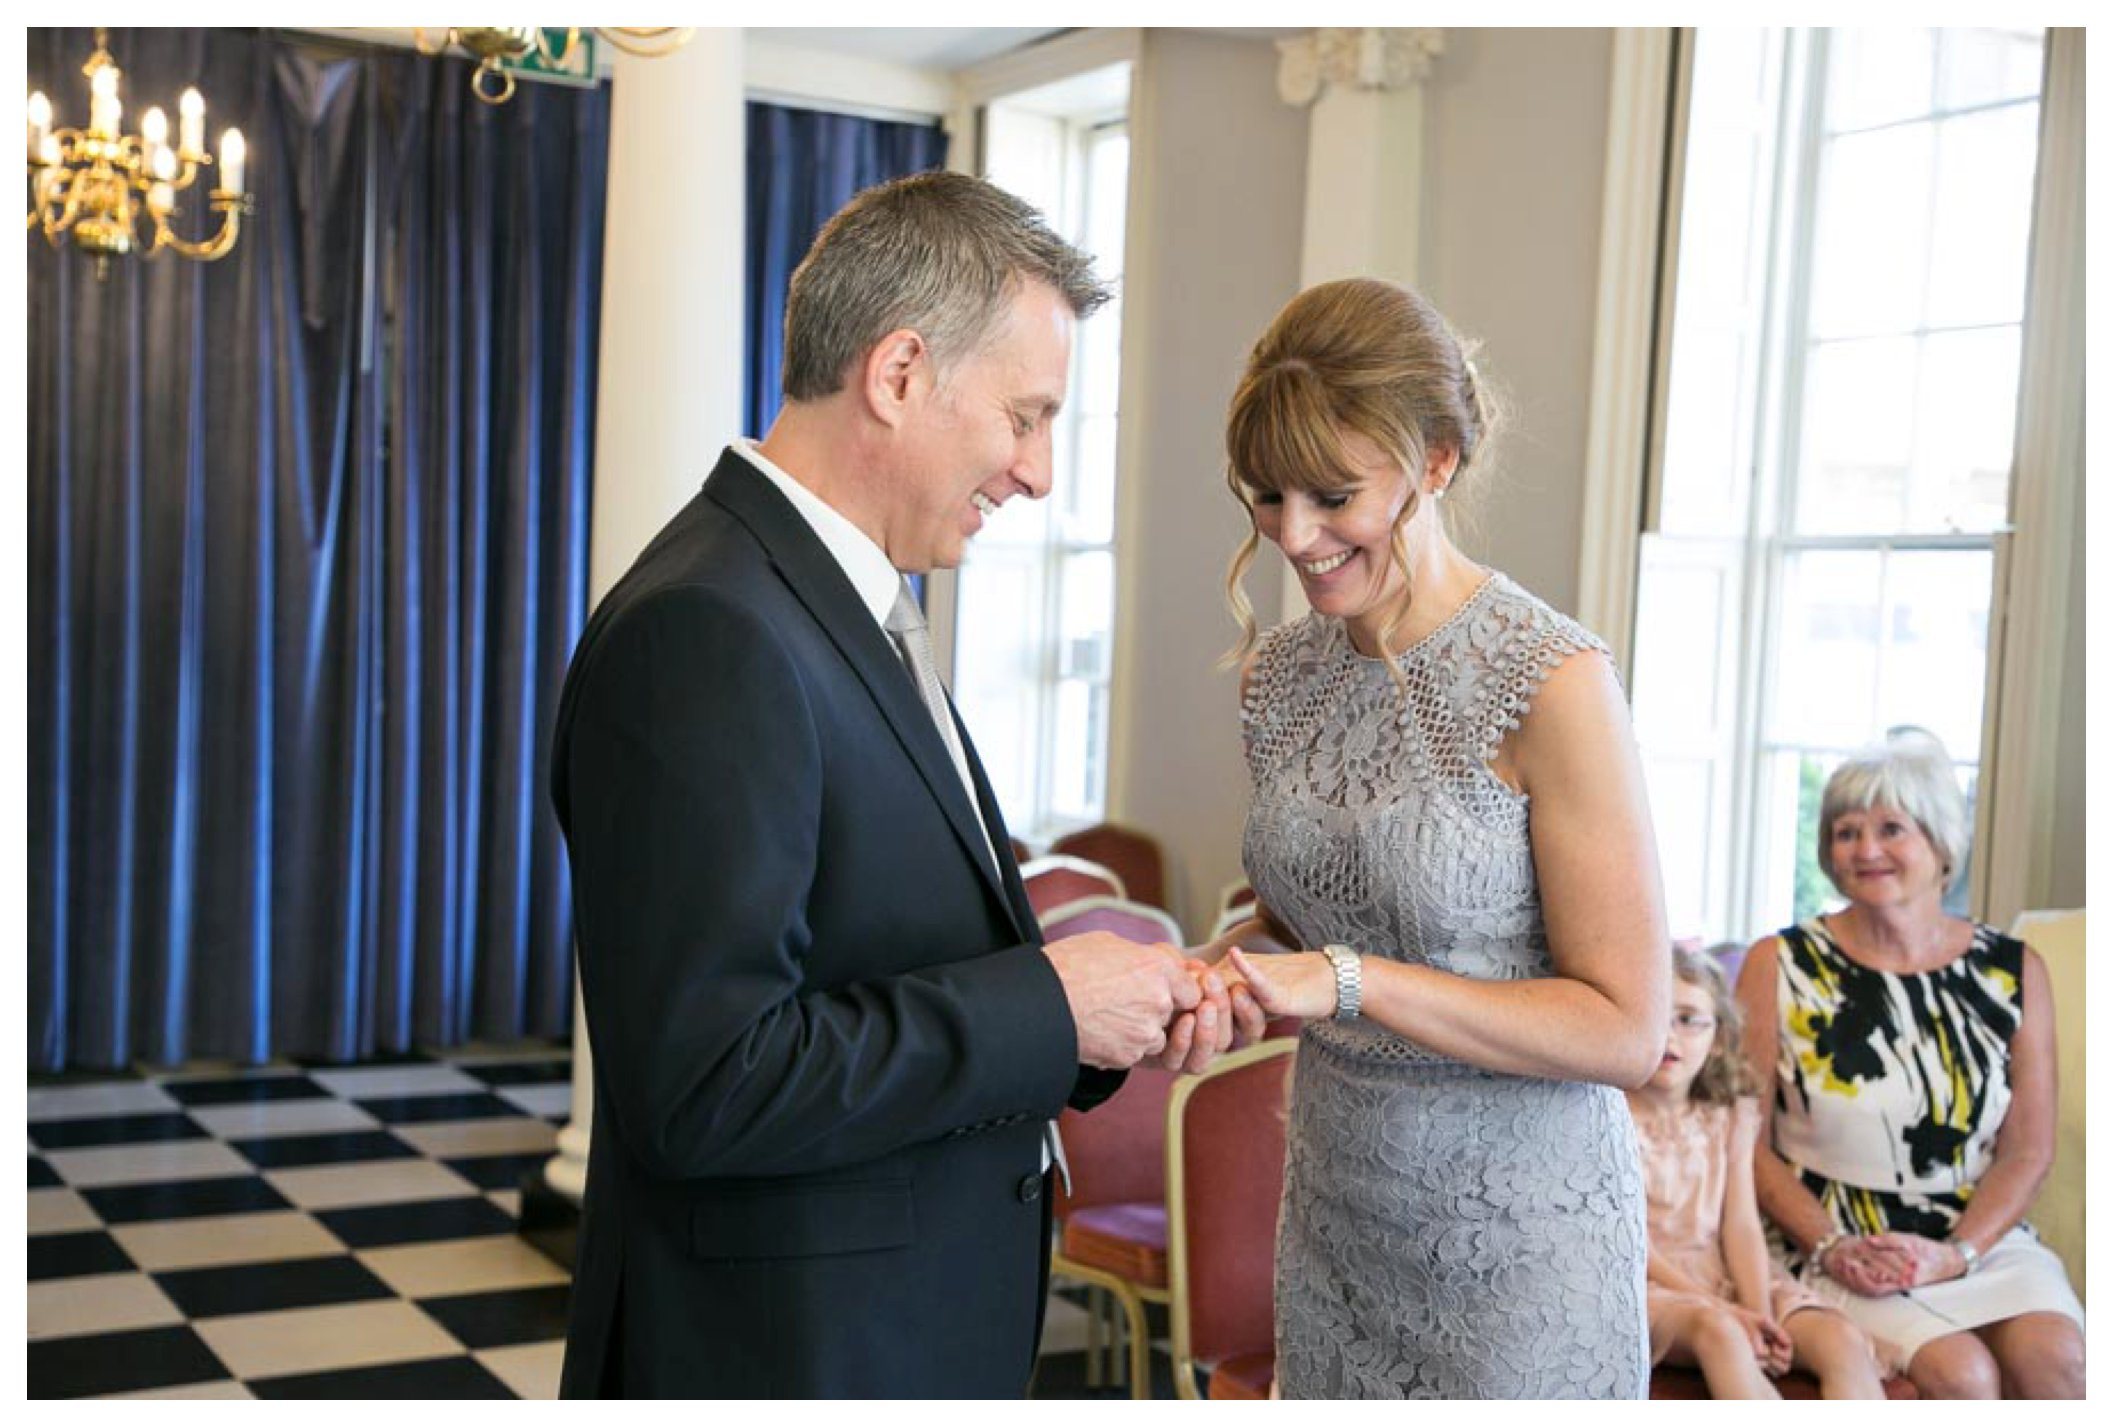 relaxed bride and groom putting ring on finger at registry office